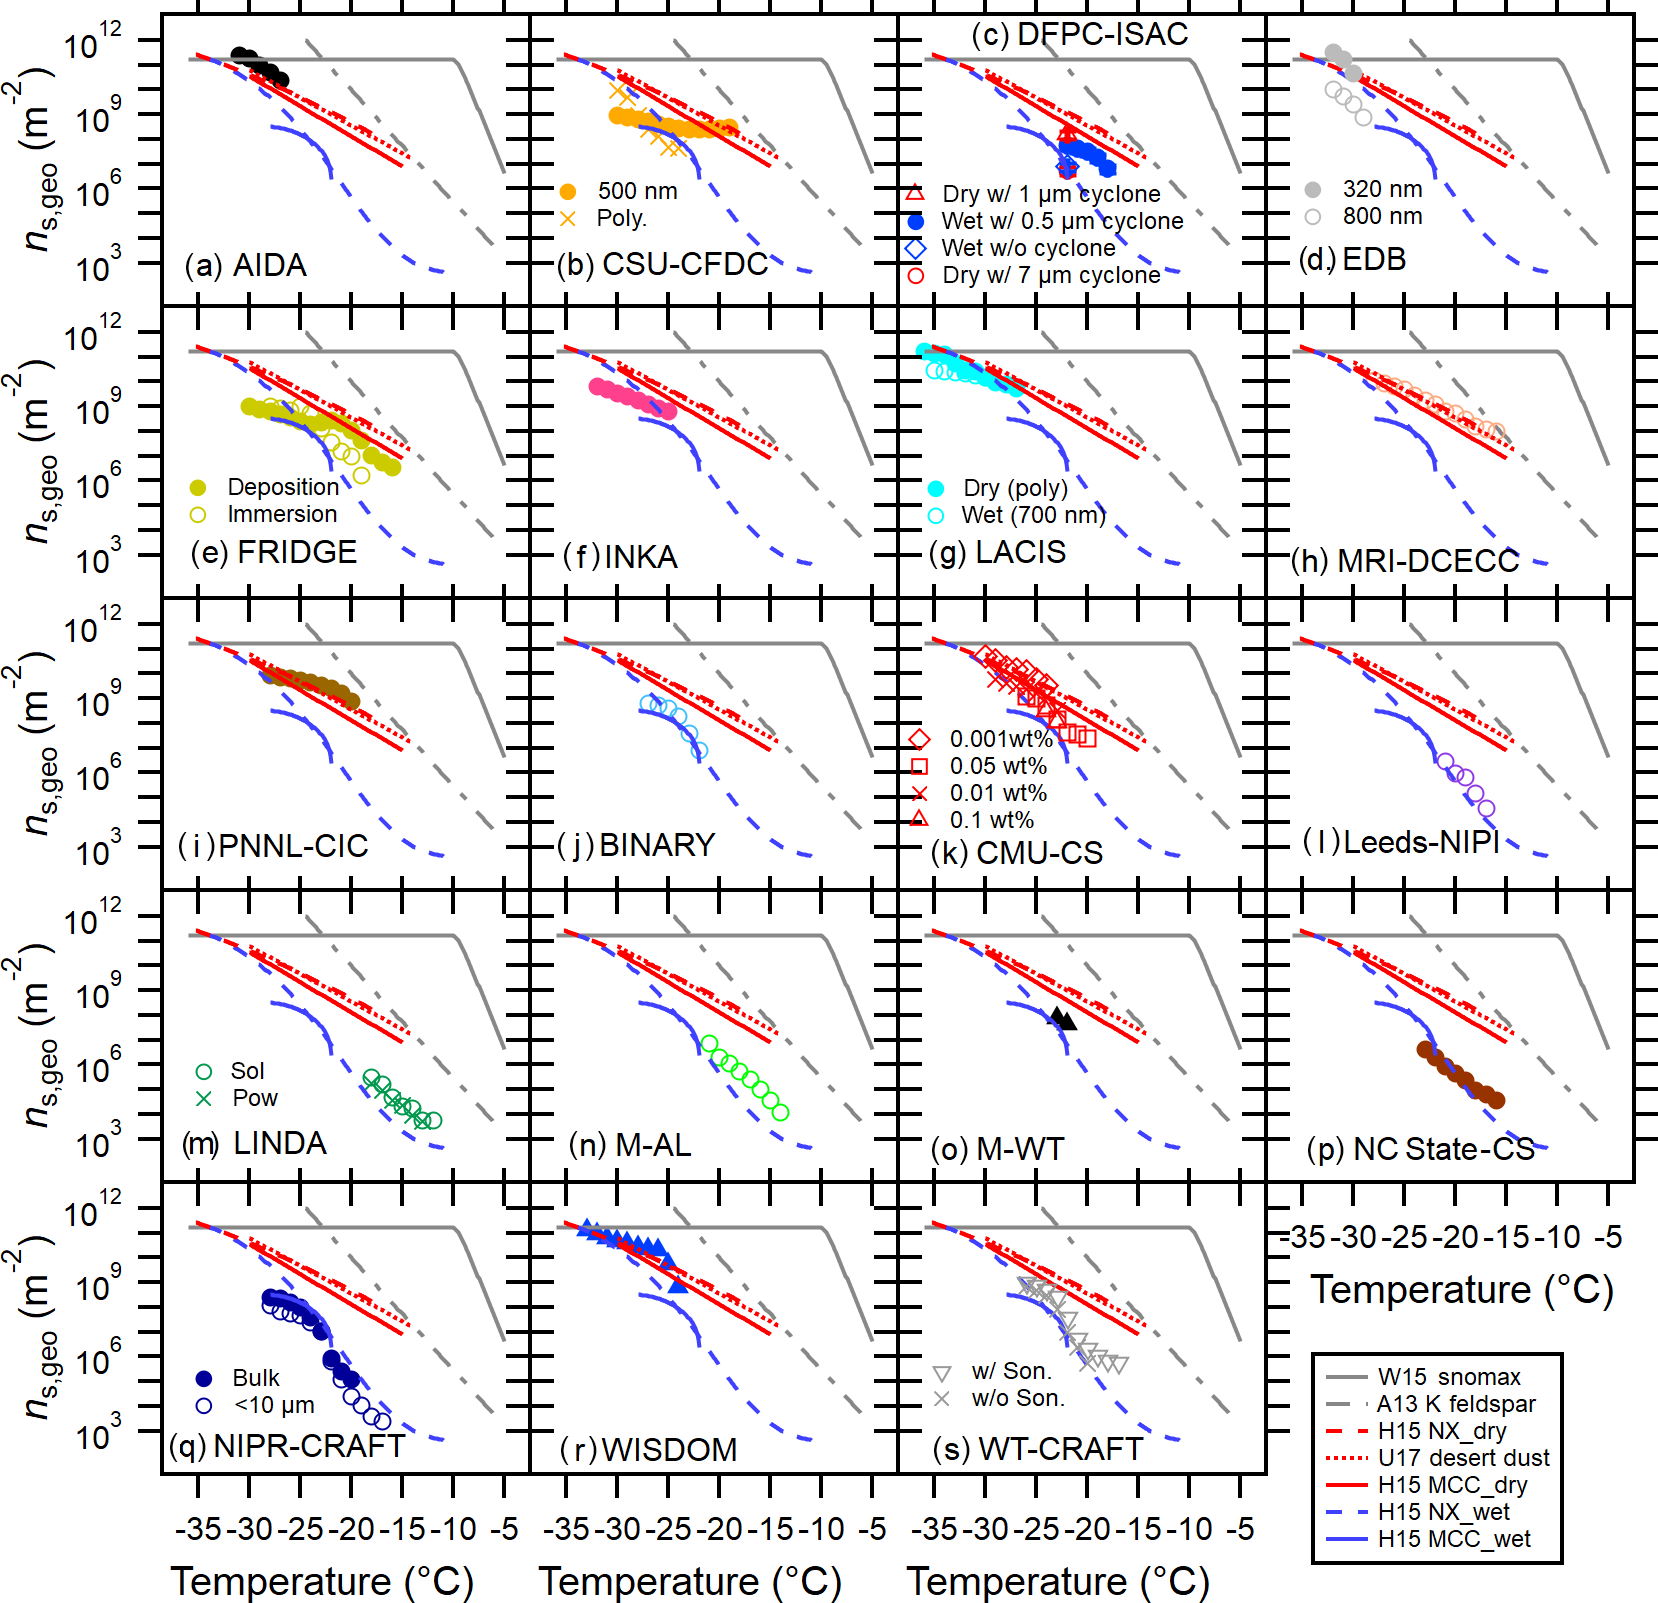 ACP - A comprehensive characterization of ice nucleation by